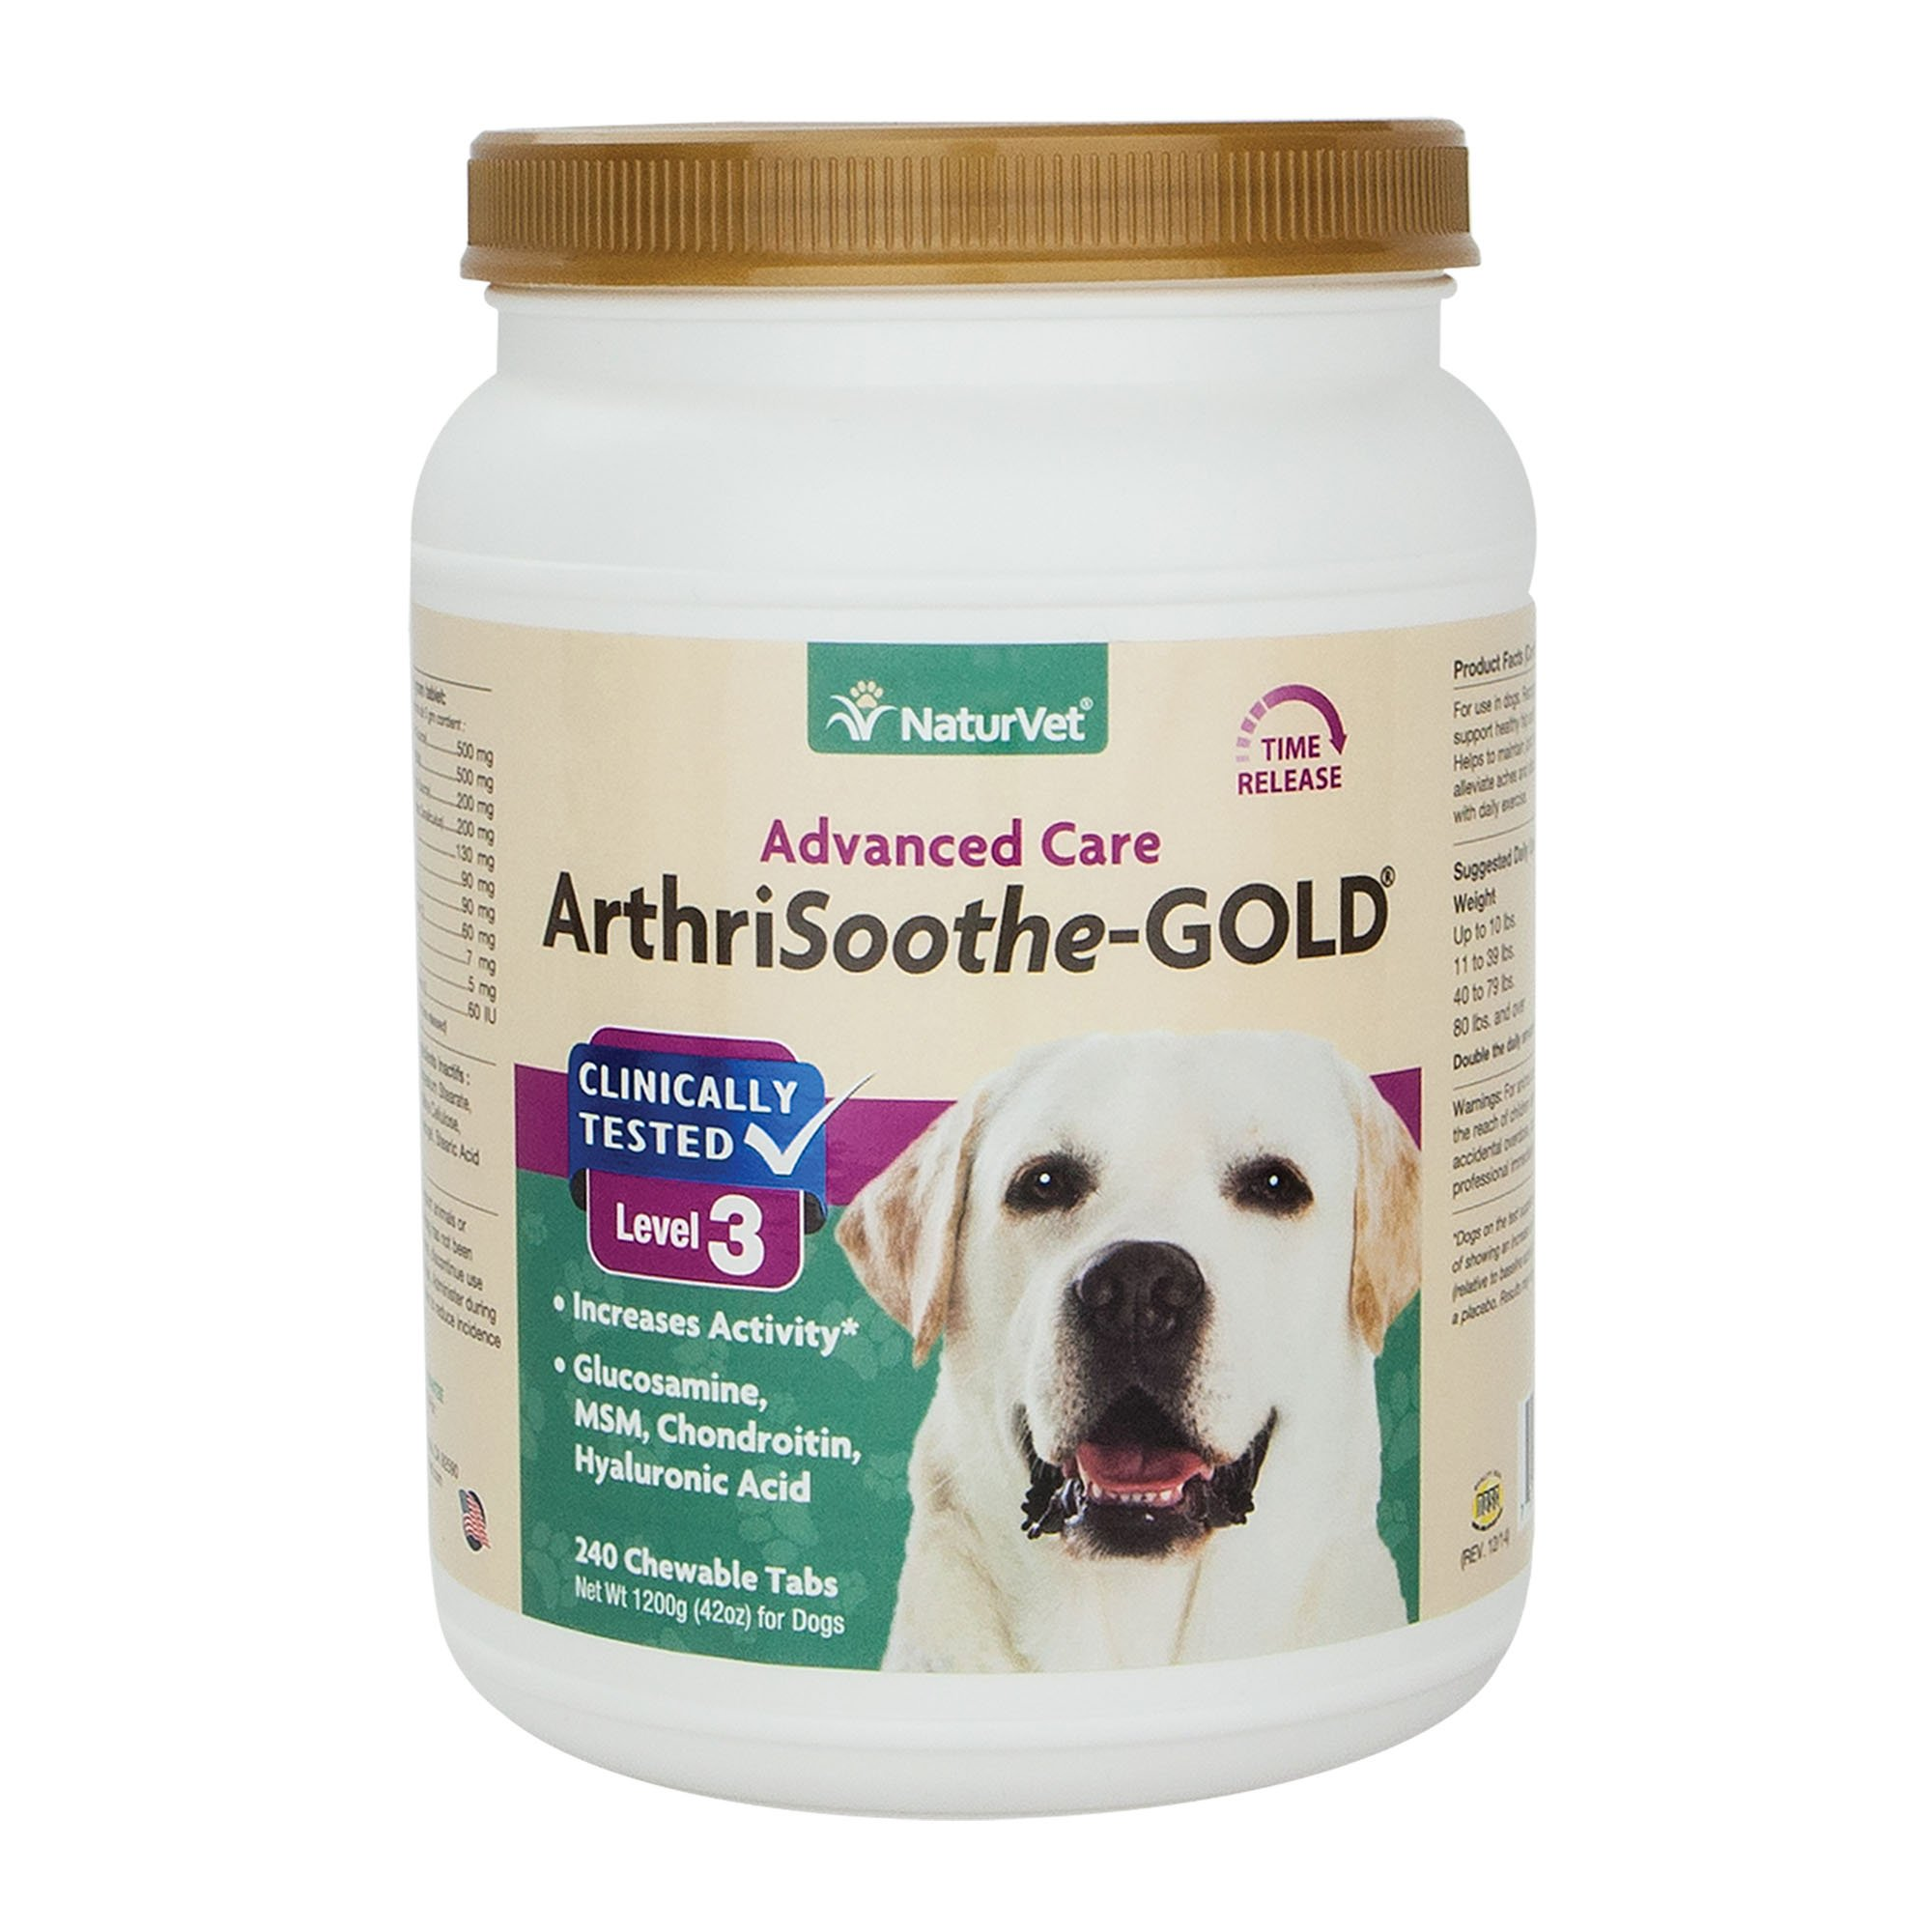 NaturVet ArthriSoothe-GOLD Level 3, MSM and Glucosamine for Dogs and Cats, Advanced